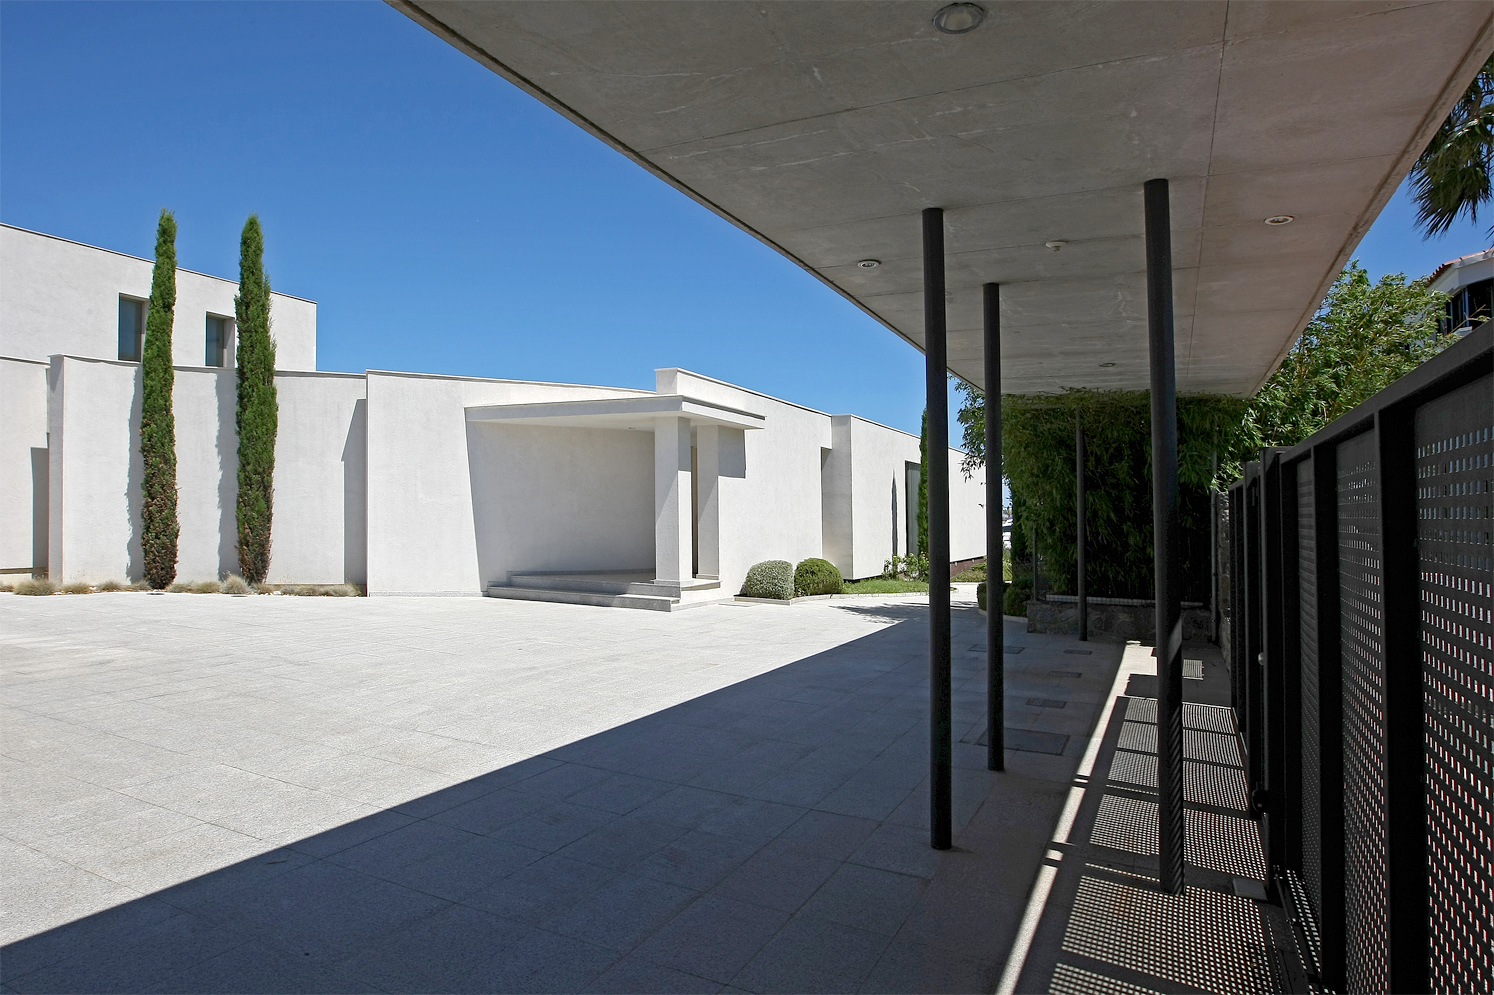 Empuriabrava architecture project